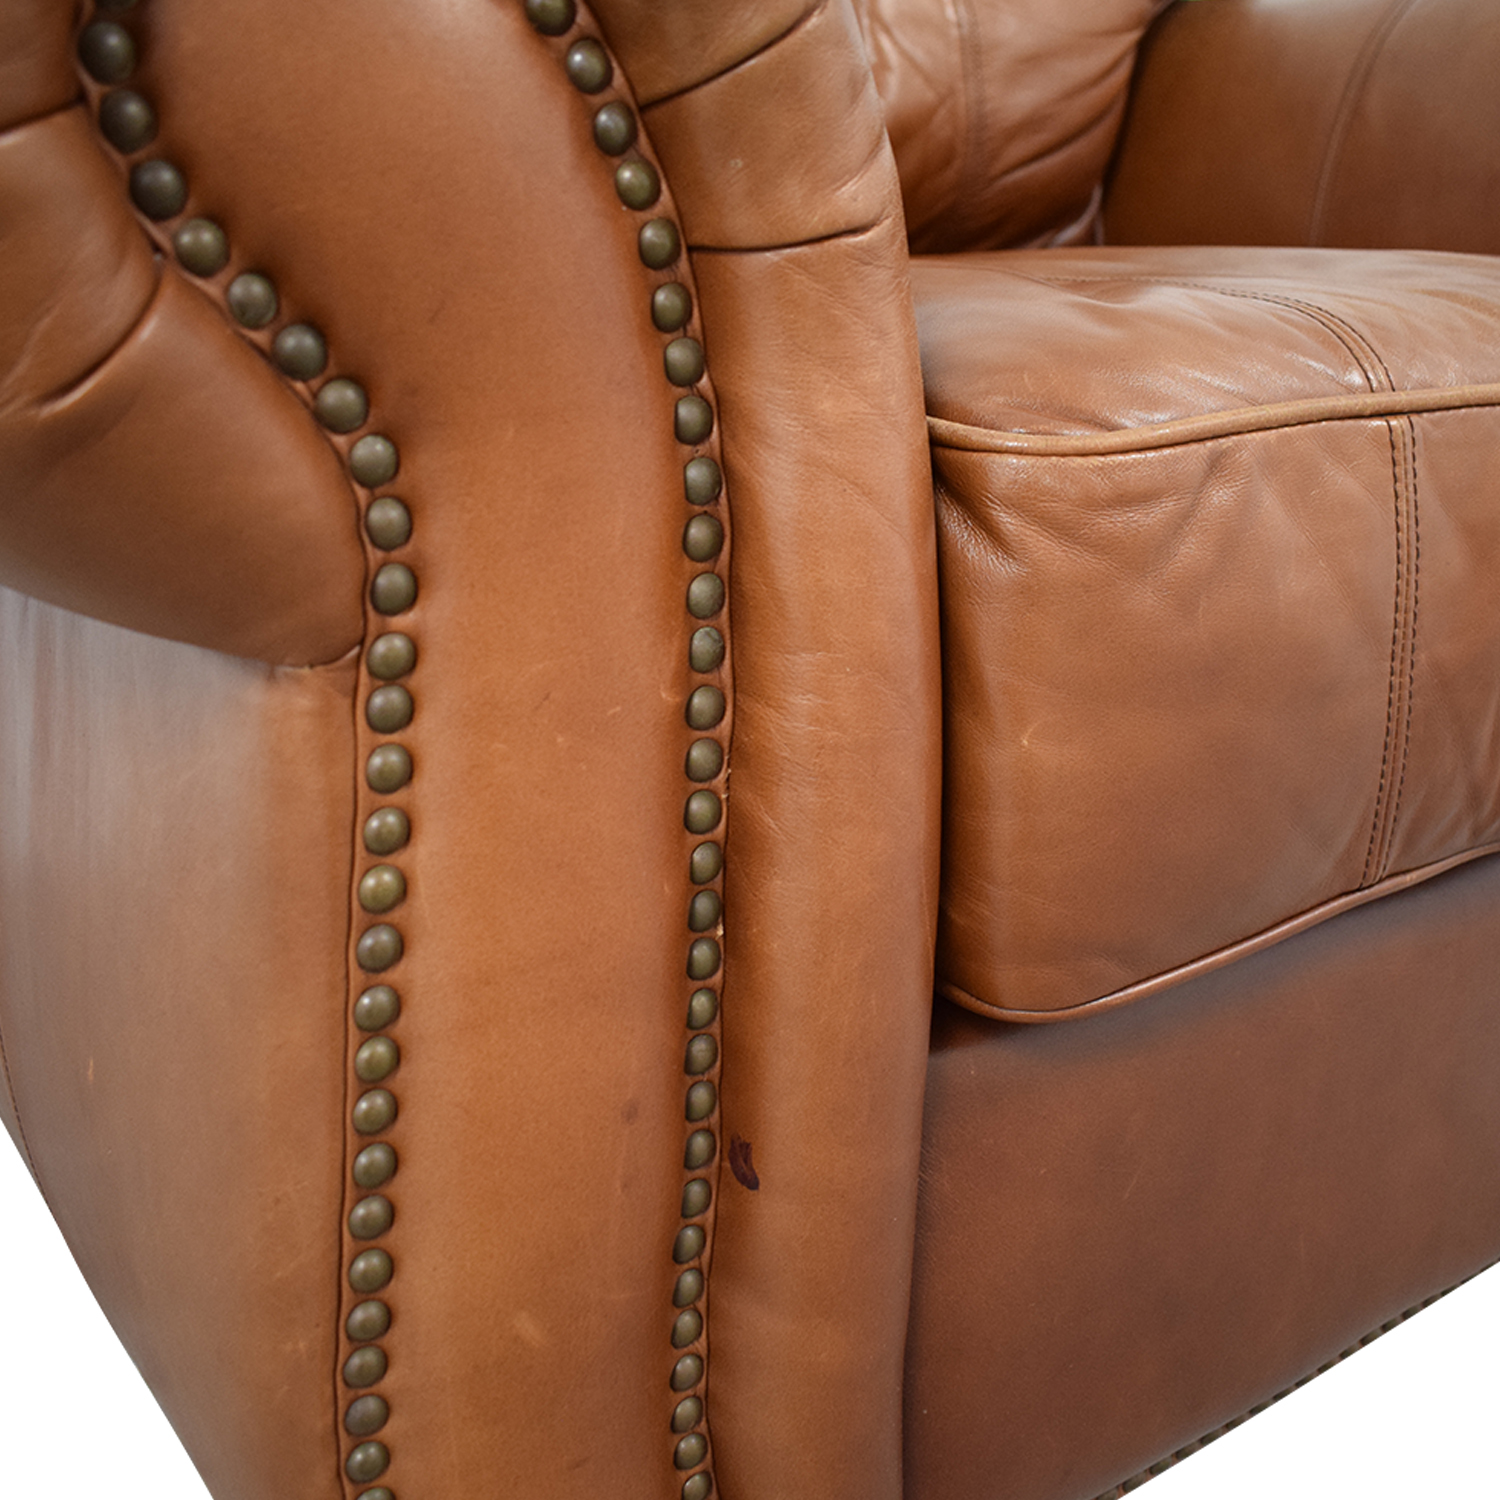 buy Thomasville Thomasville Leather Sofa Chair online